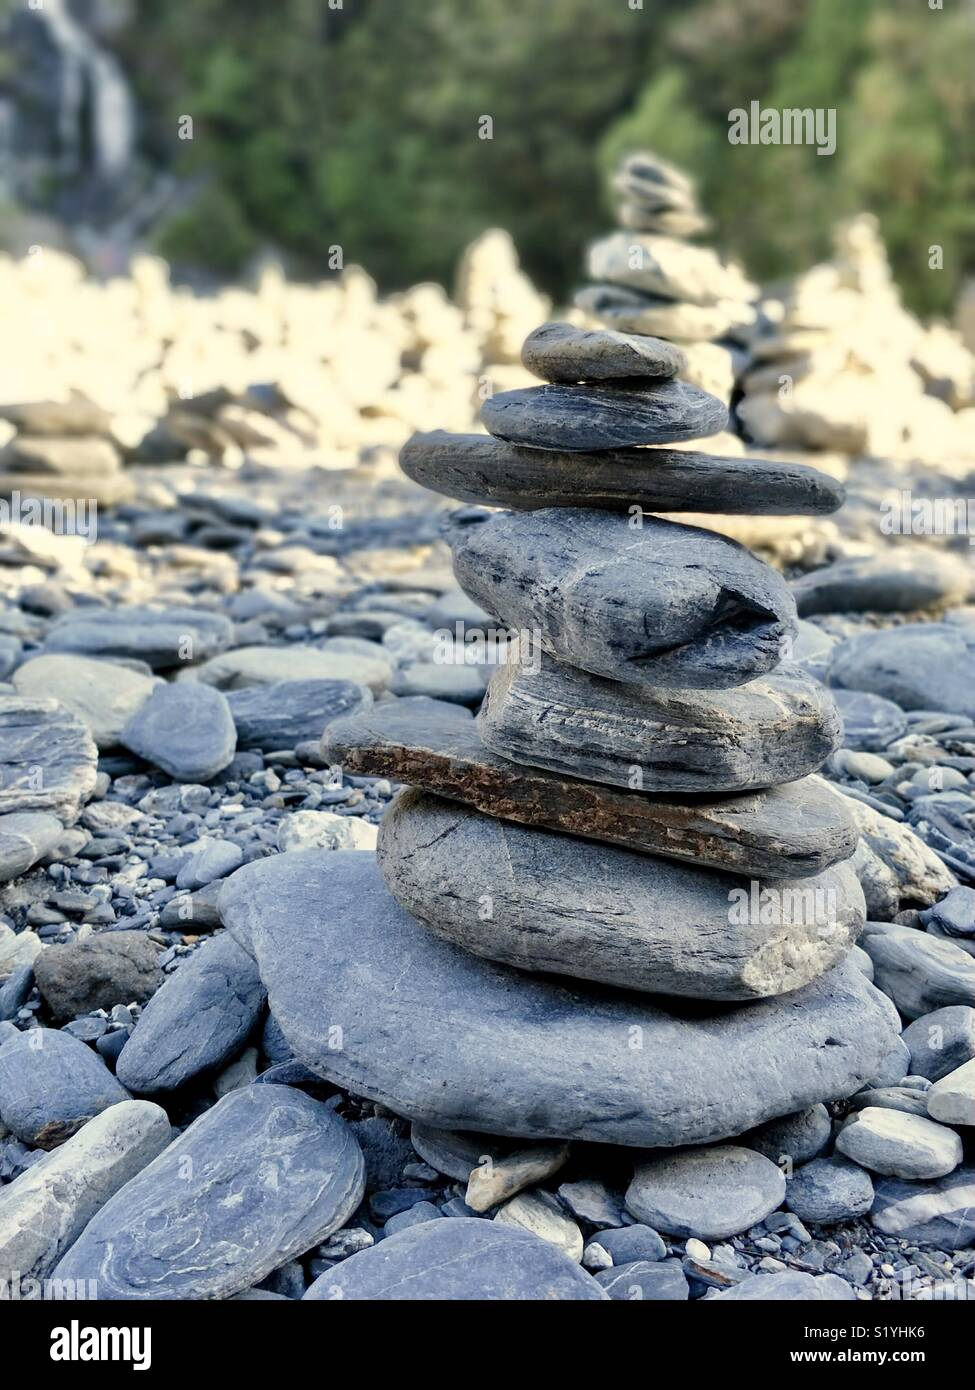 Stacking rocks in nature Stock Photo: 311007850 - Alamy